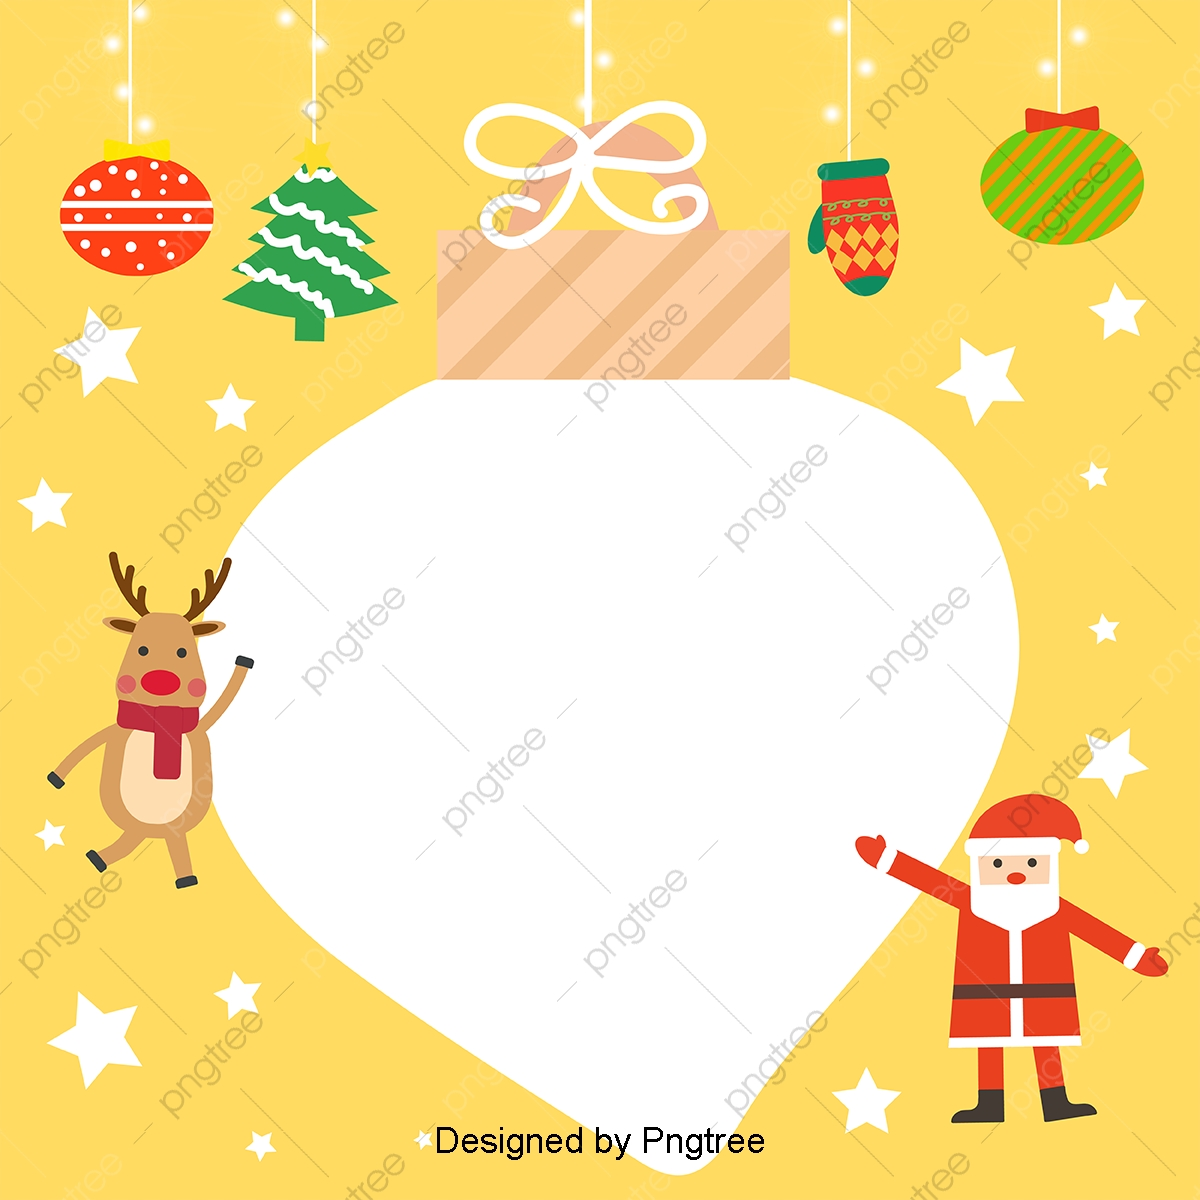 Simple Cute Hand Painted Christmas Cute Cartoon Background